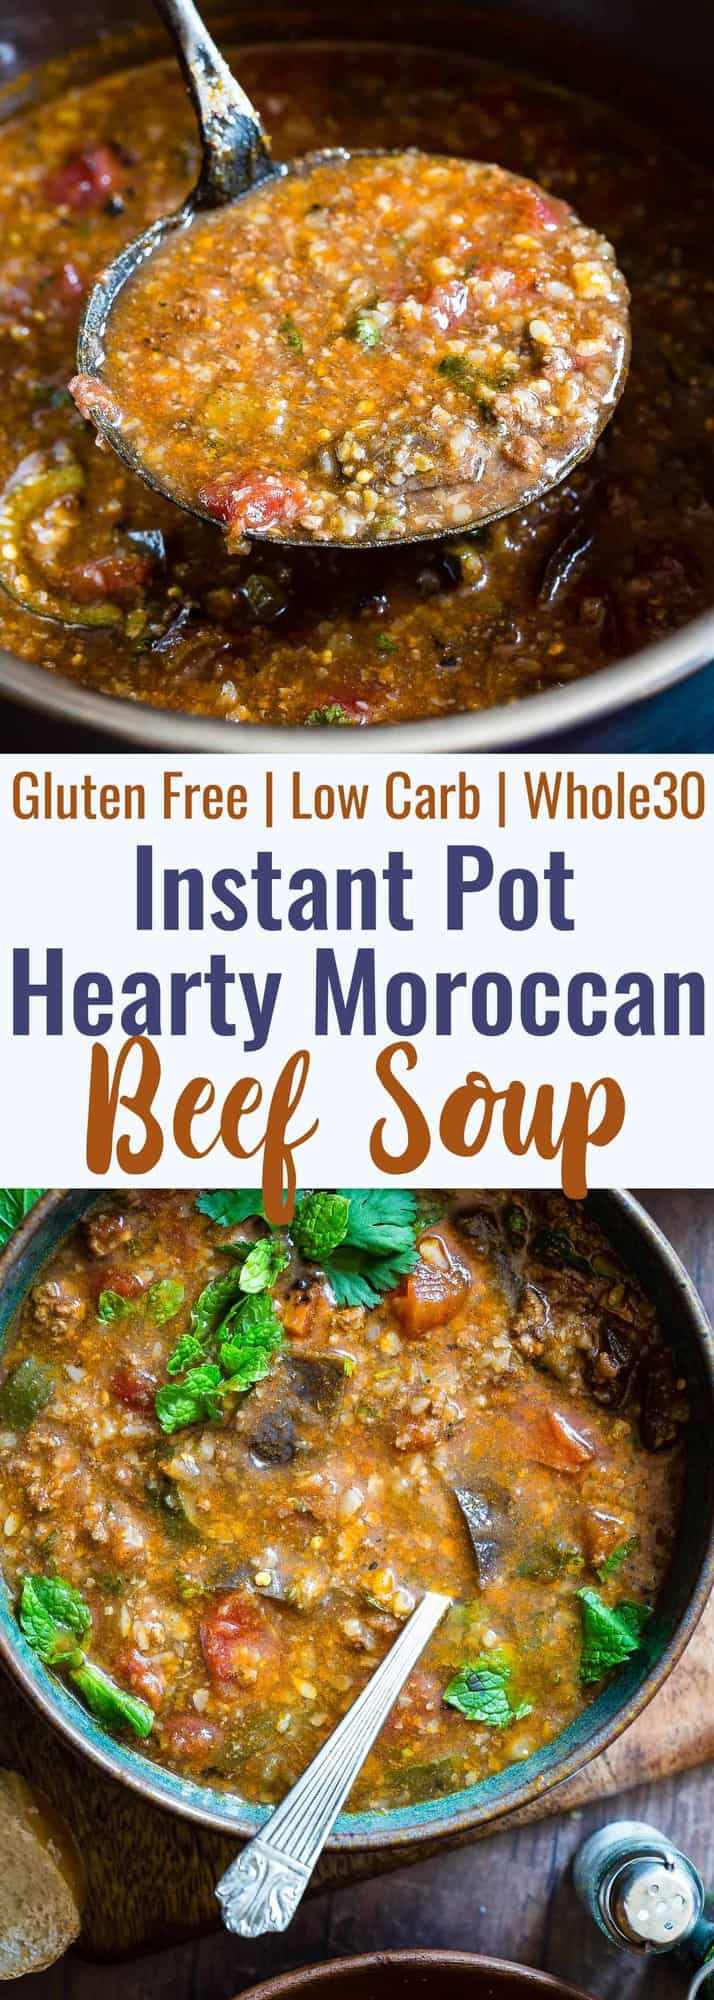 Moroccan Instant Pot Hearty Vegetable Beef Soup - A quick and easy, COZY, 30 minute dinner with a taste of the Middle East! Gluten free, low carb, paleo/whole30 compliant and so filling for only 220 calories!| #Foodfaithfitness | #Glutenfree #Paleo #Whole30 #Lowcarb #Instantpot